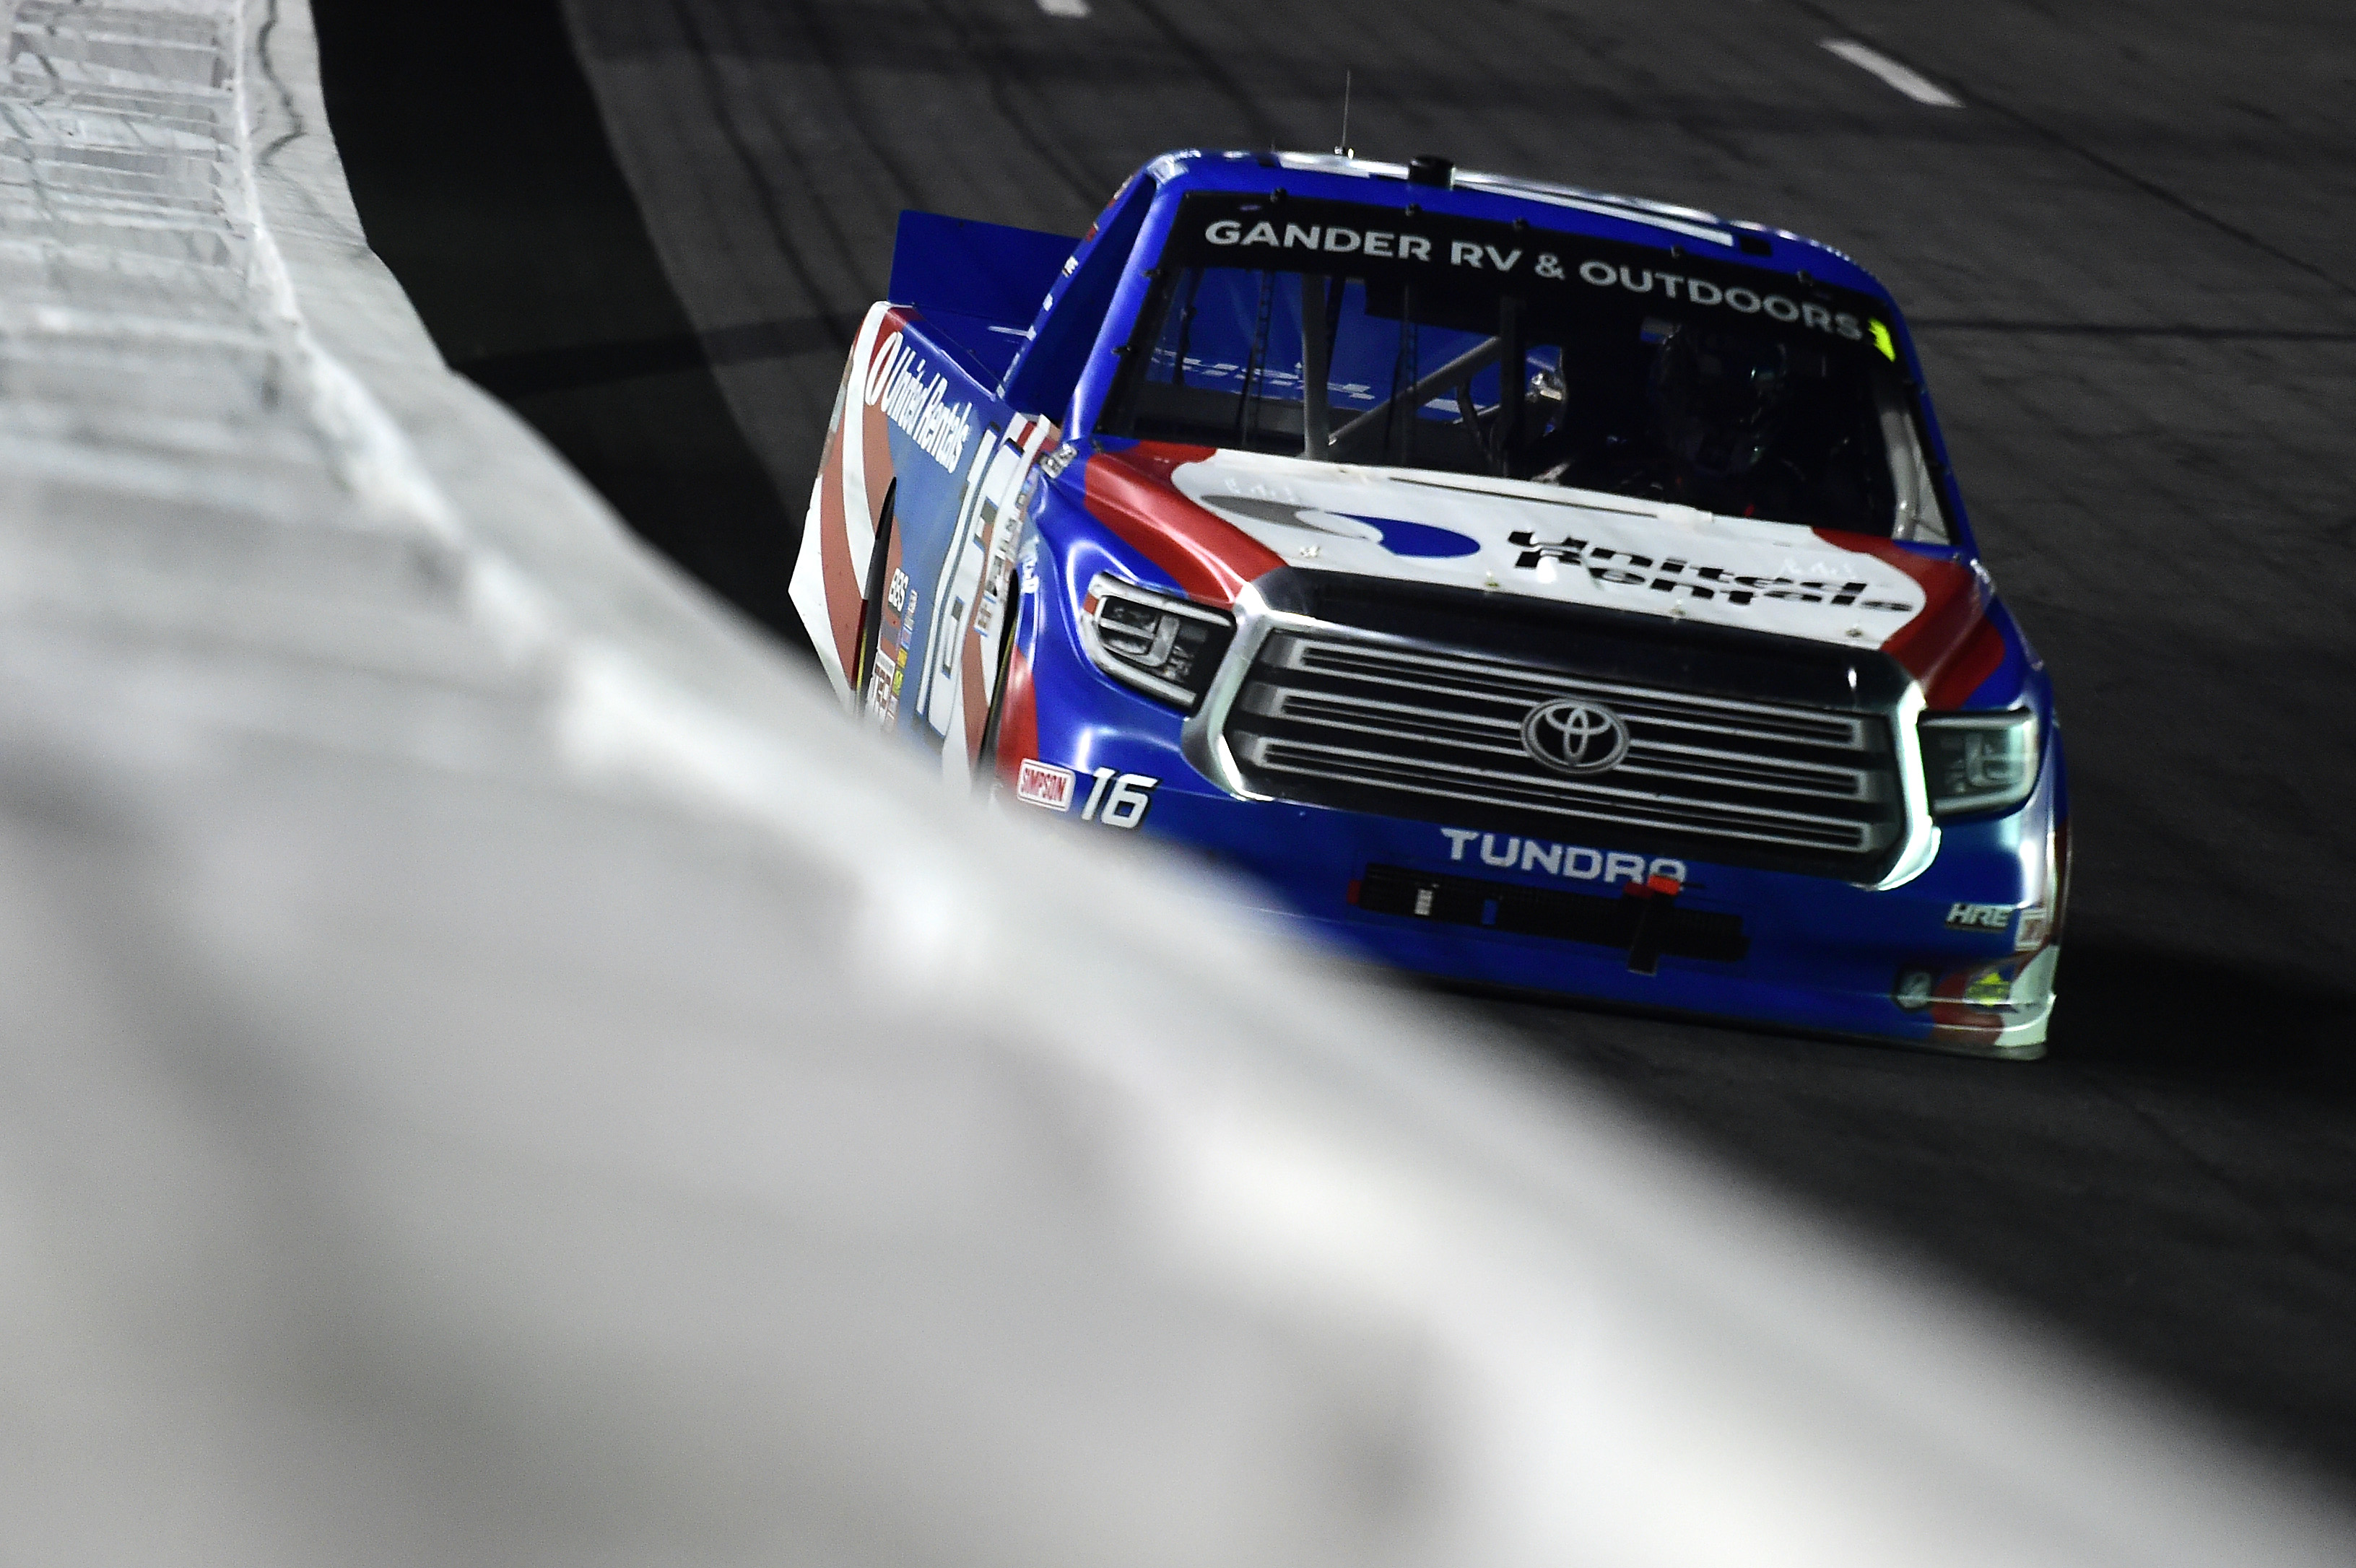 Austin Hill, driver of the #16 United Rentals Toyota, drives during the NASCAR Gander Outdoors Trucks Series North Carolina Education Lottery 200 at Charlotte Motor Speedway on May 26, 2020 in Concord, North Carolina.